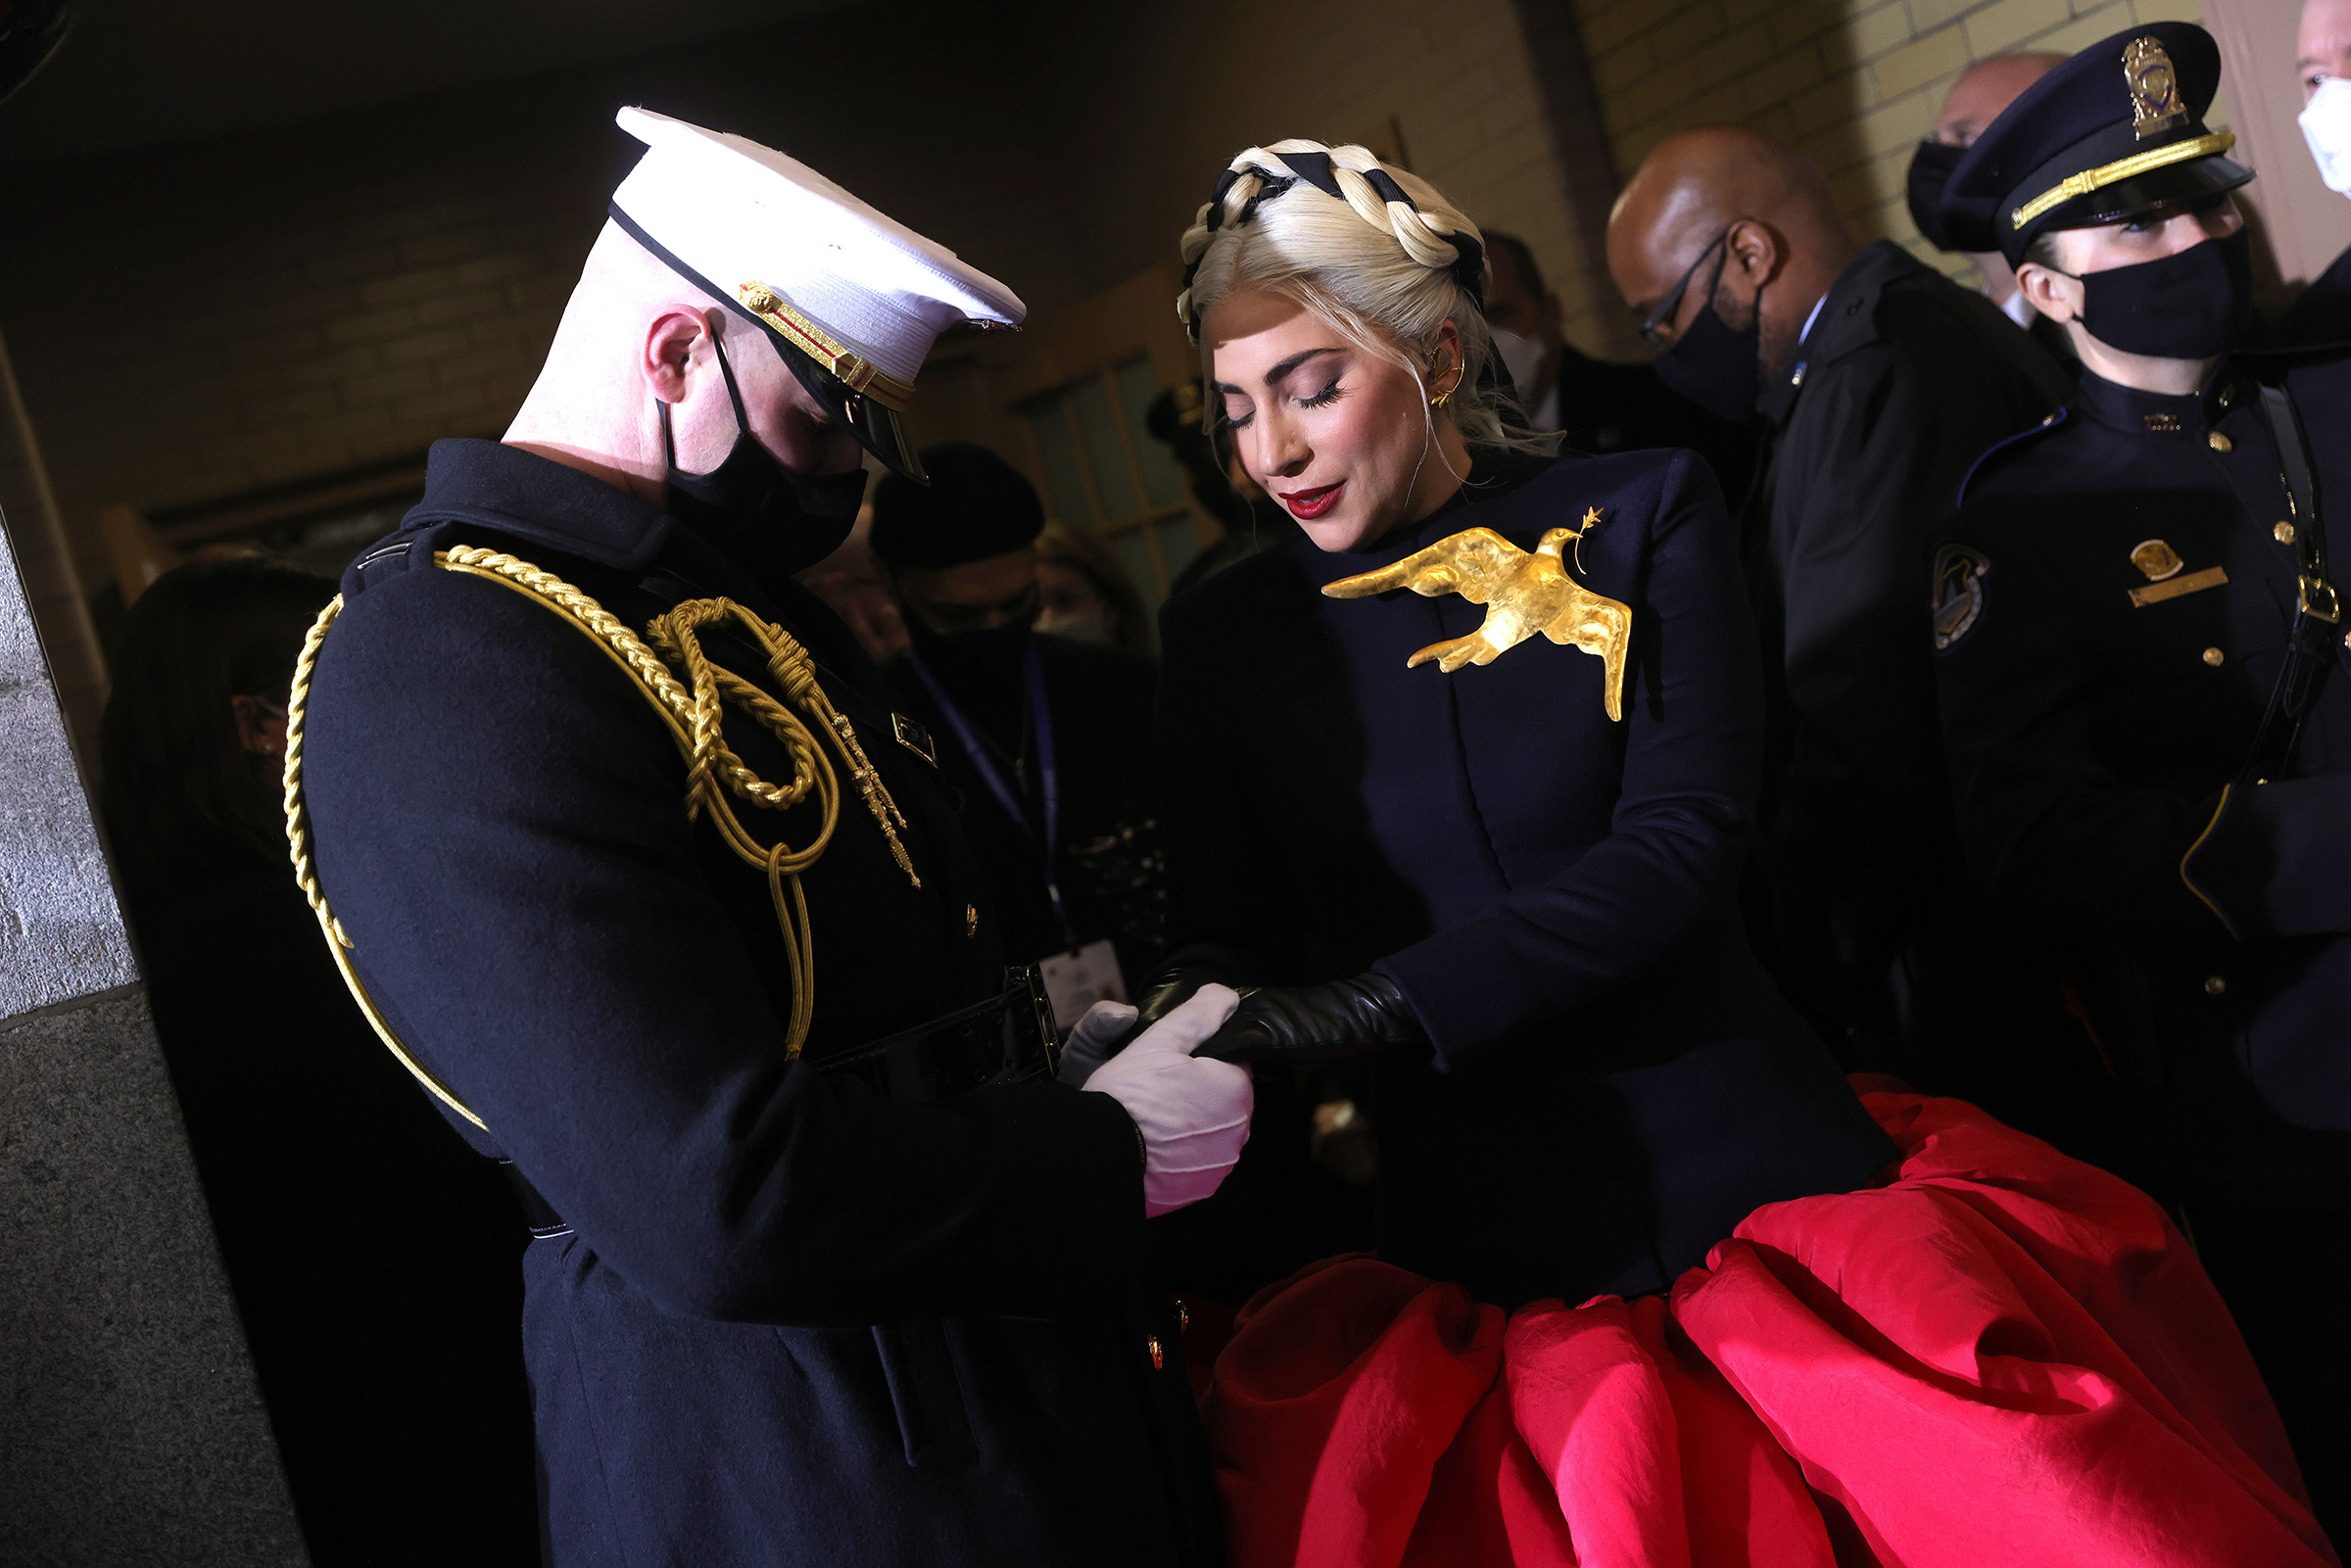 Lady Gaga arrives to sing the National Anthem at the inauguration.